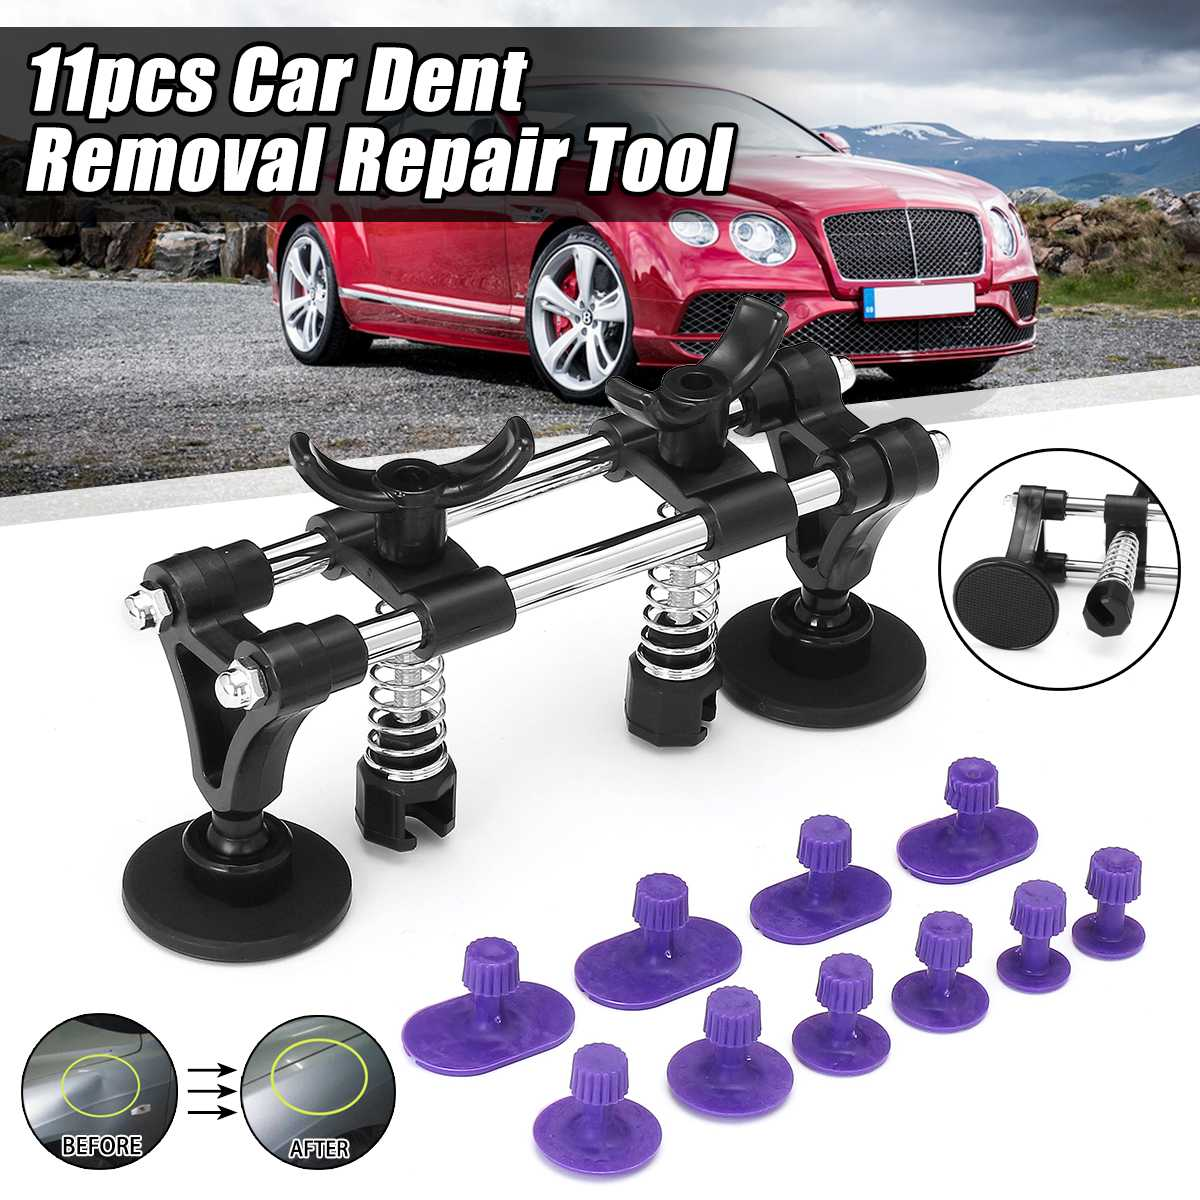 New Car Dent Repair Tool +10xTabs For Car Body Removal Slide Suction Cup Bridge Set Vehicle Paintless Dent Repair Dent Puller